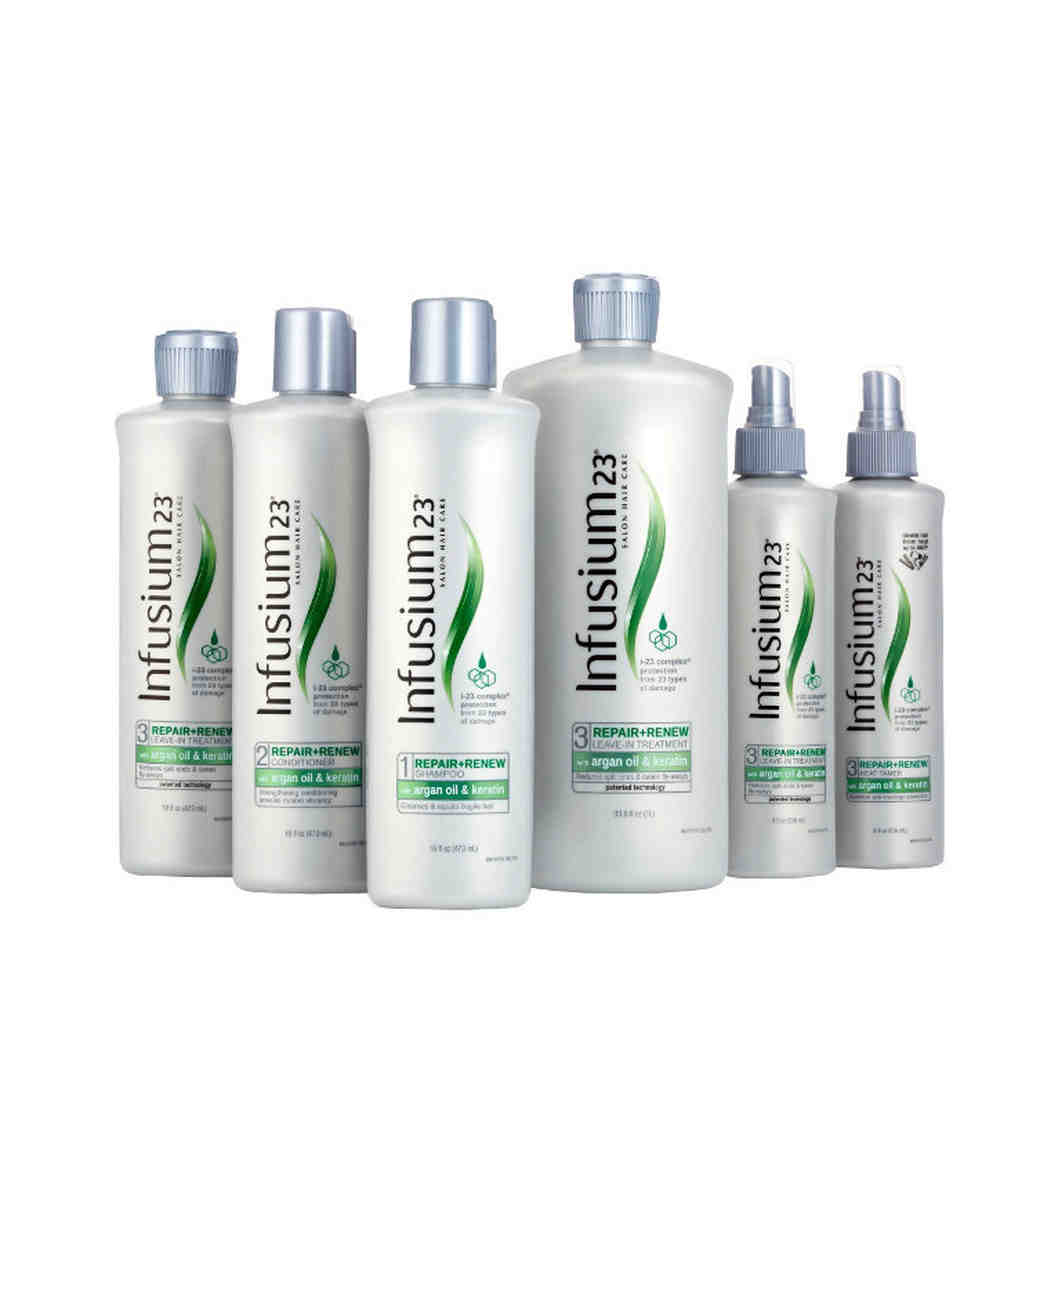 Infusium 23 Repair & Renew Collection